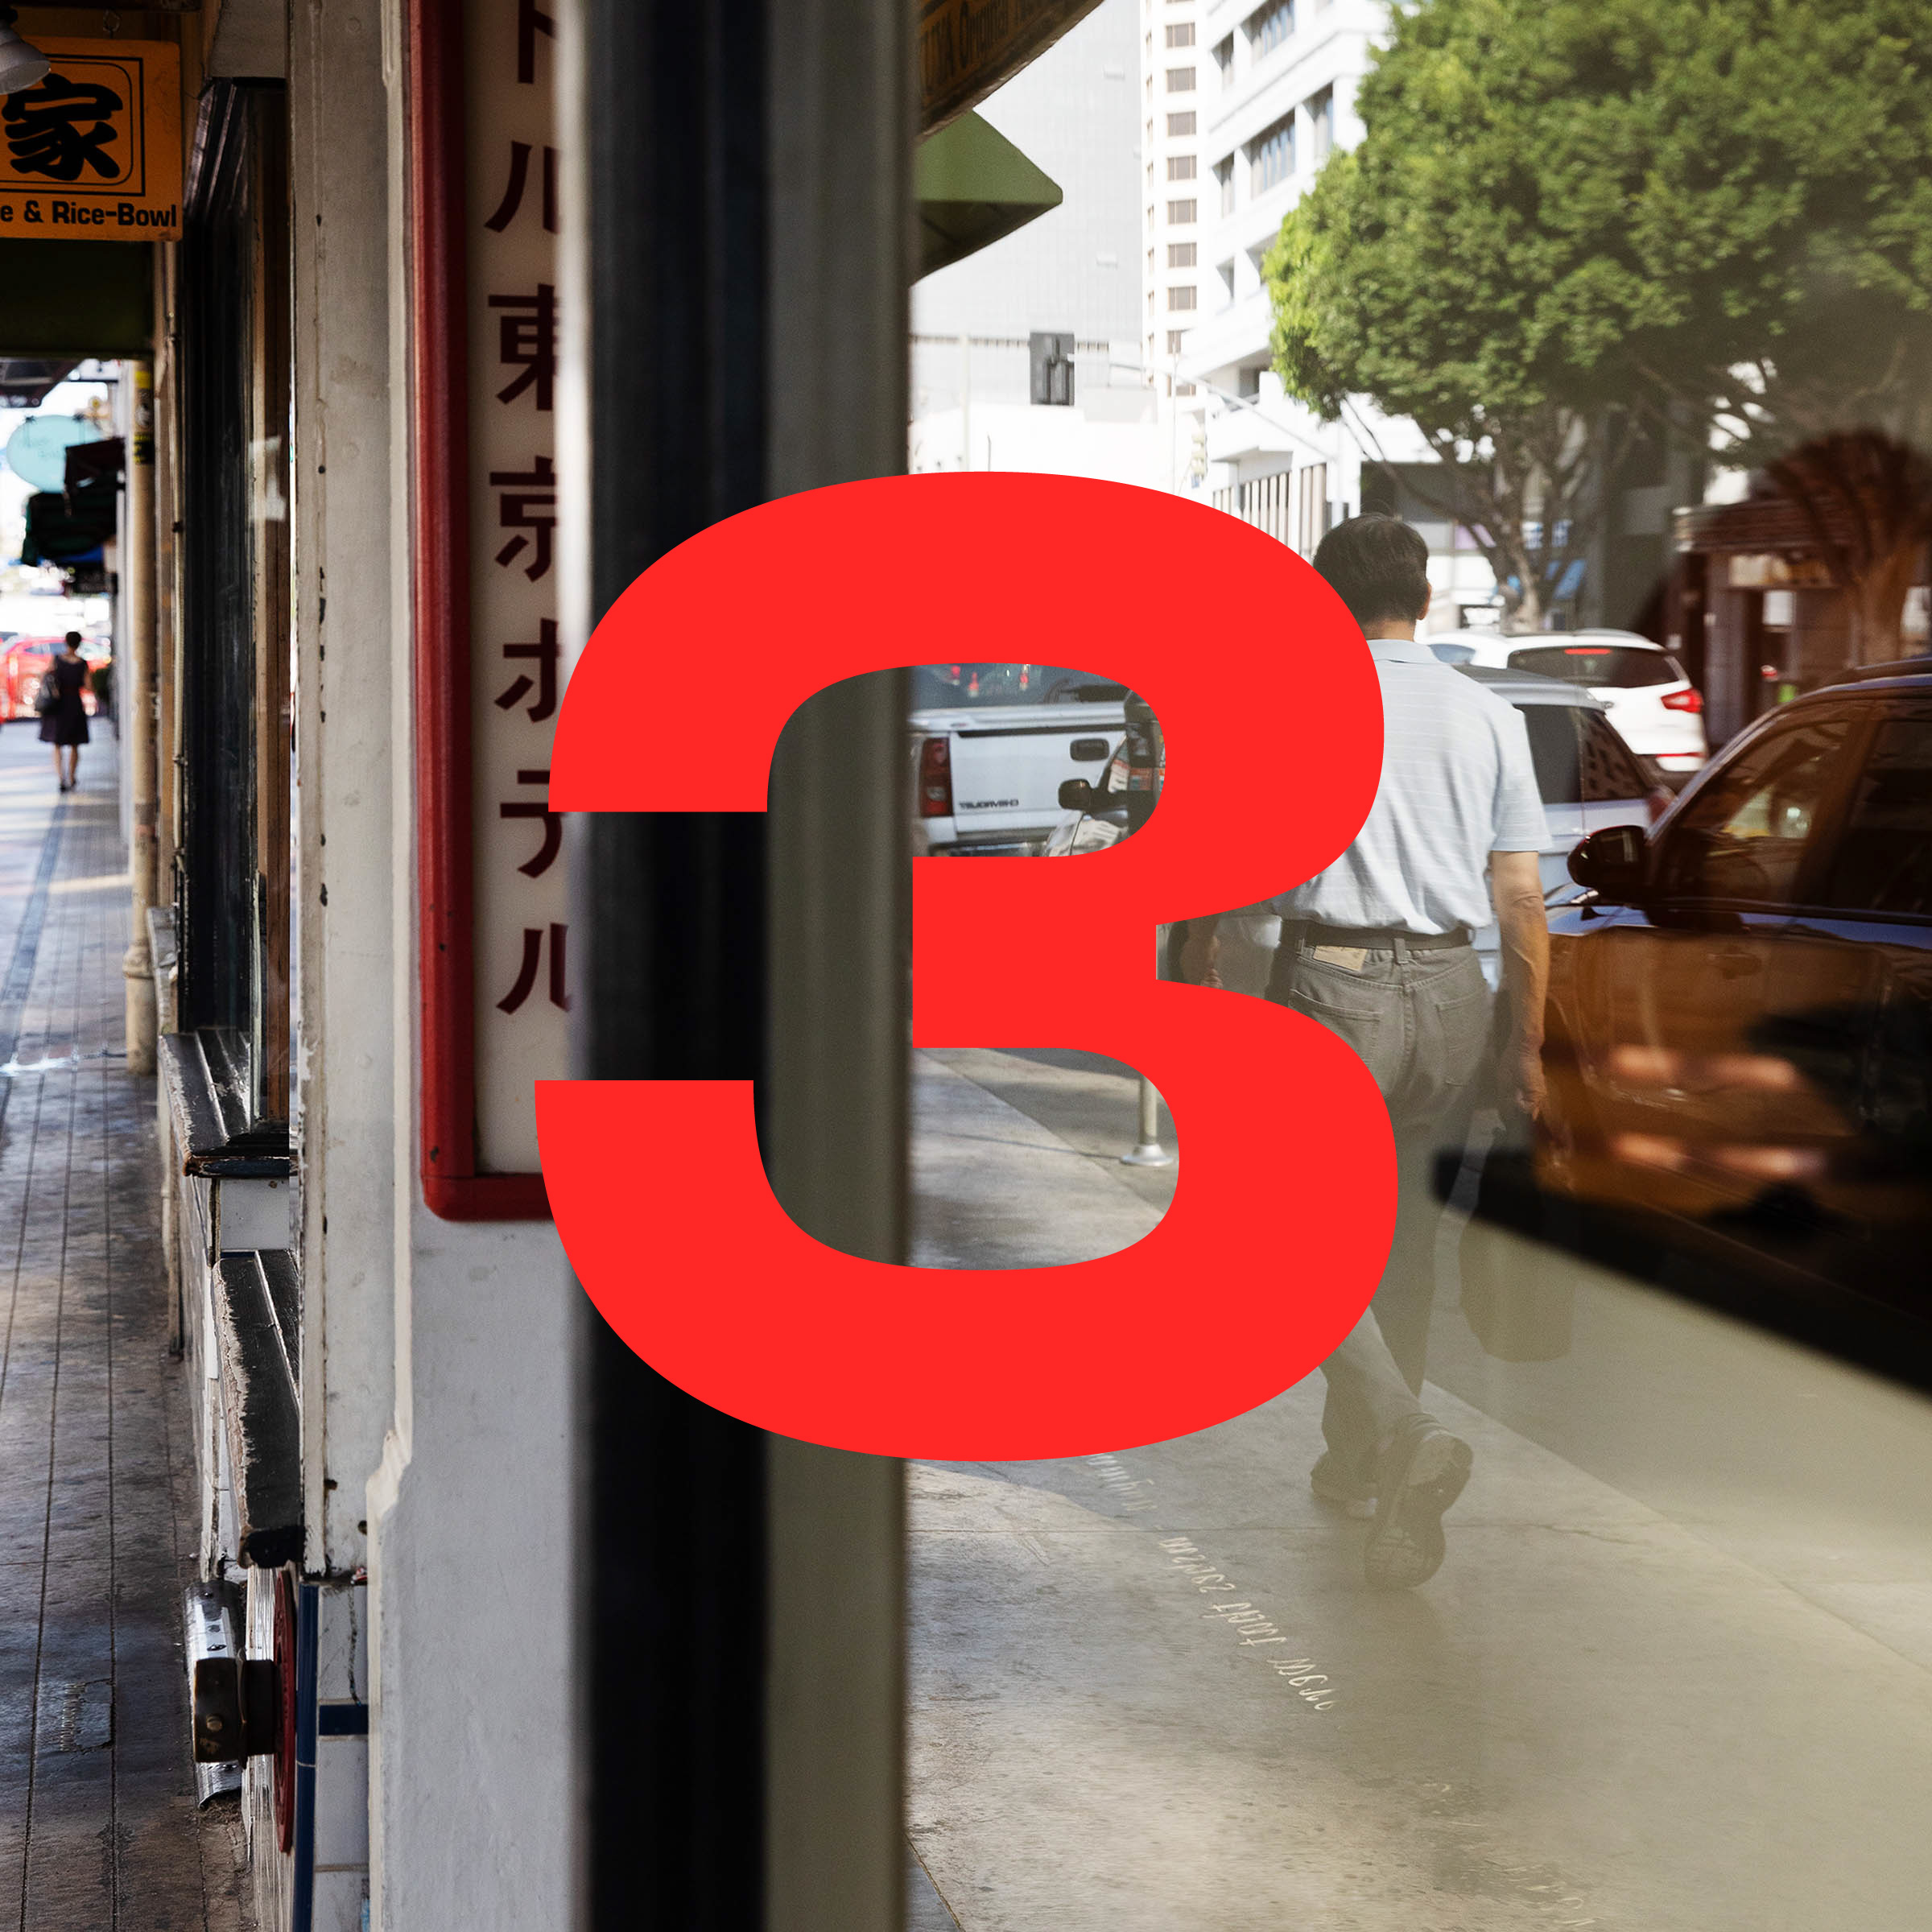 The red numeral 3 is superimposed over a photograph of a city sidewalk. Japanese writing appears on a sign. A shop window reflects traffic, a line of parked cars, and a man walking away from the camera.